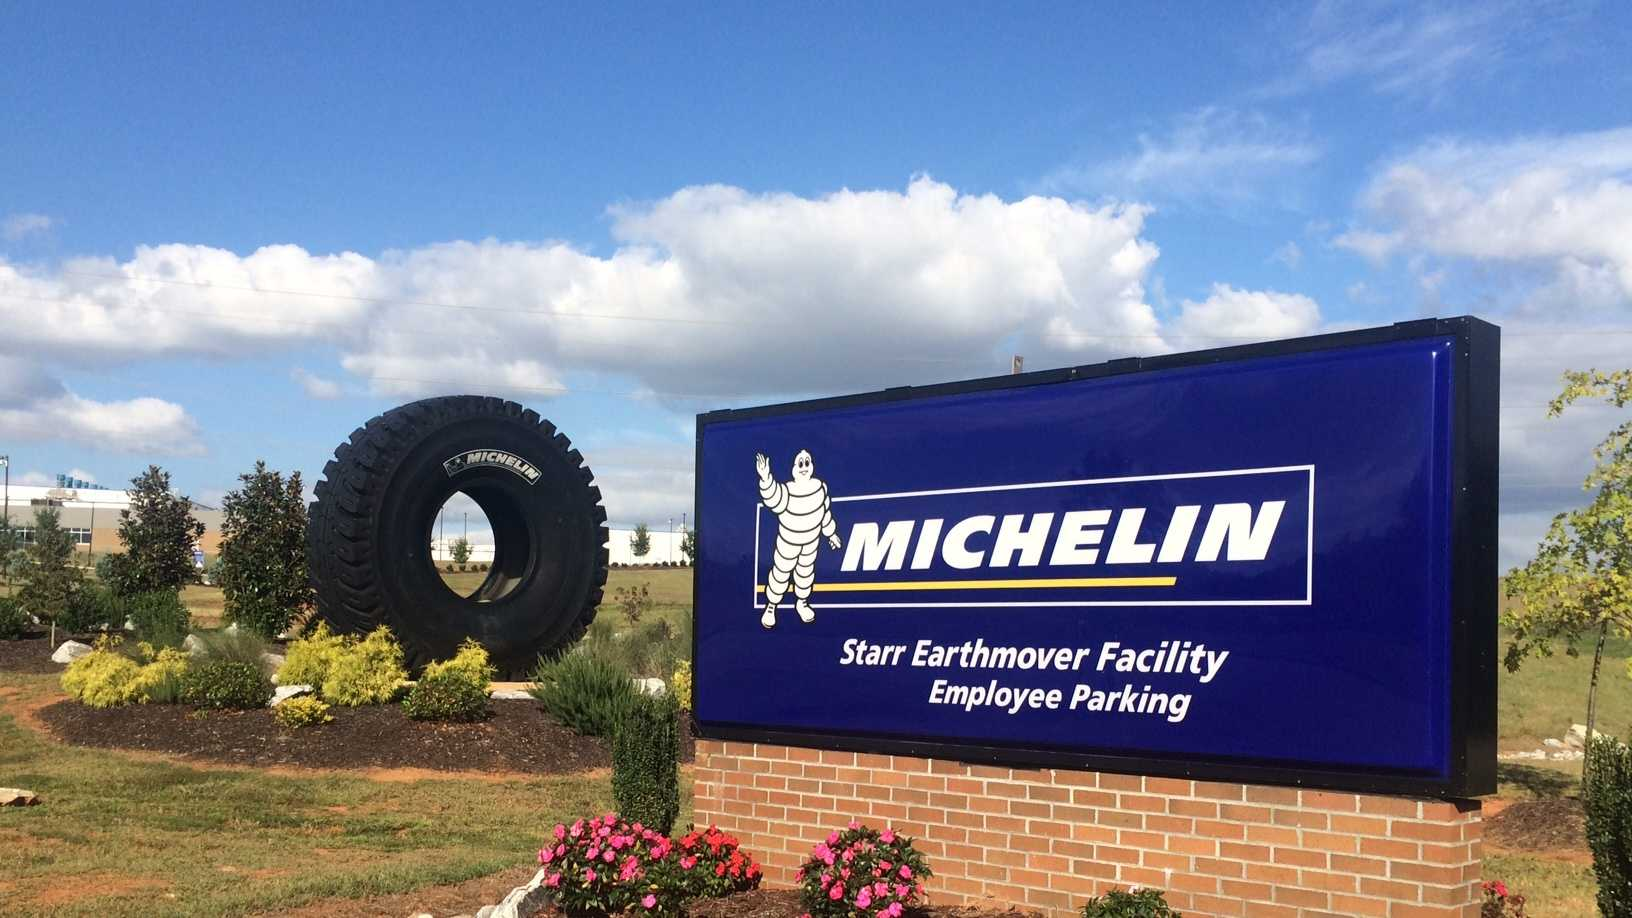 Michelin Earthmover plant in Starr